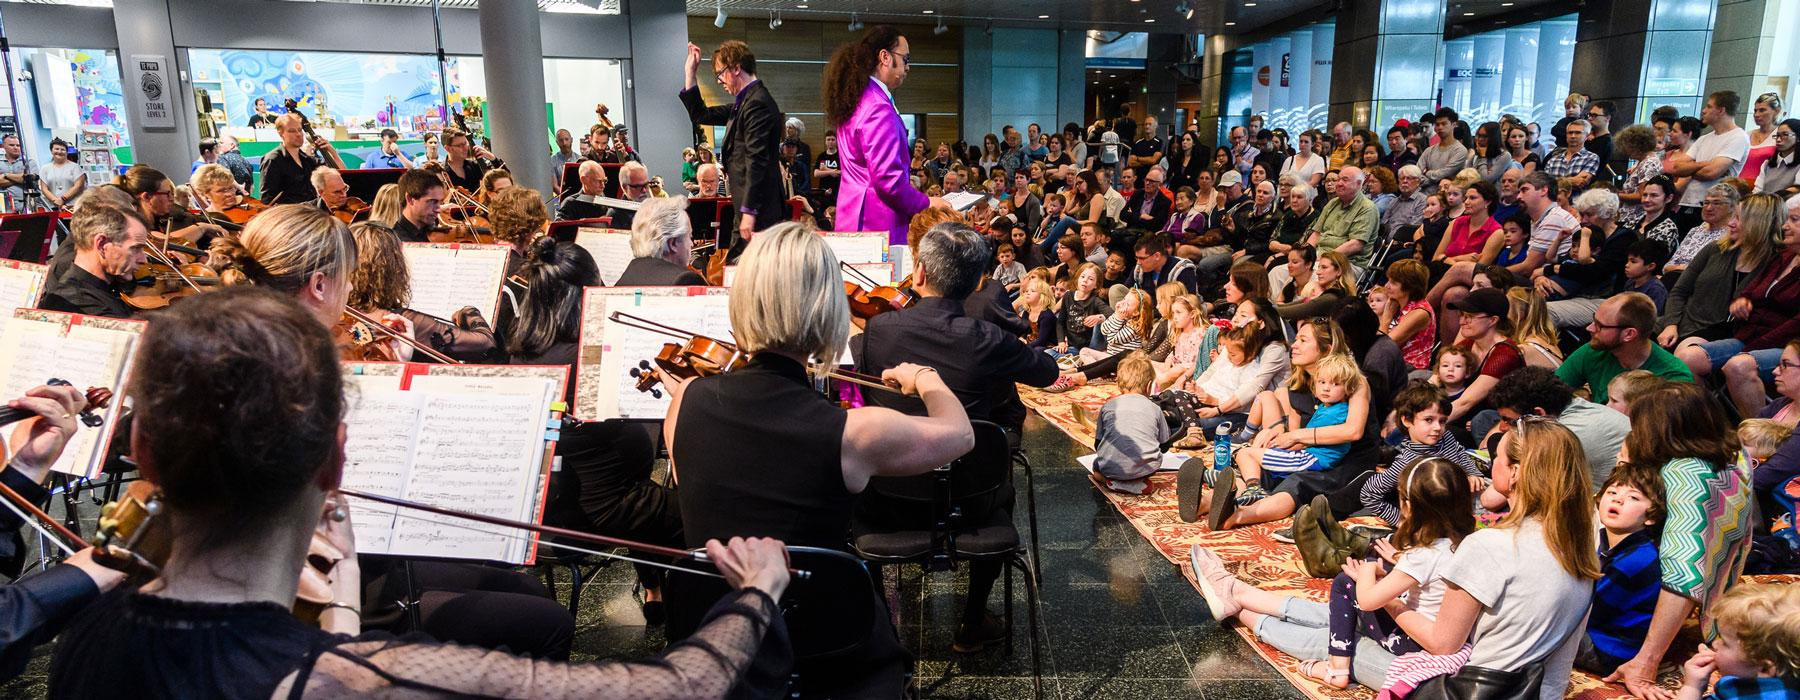 An orchestra performs to an audience